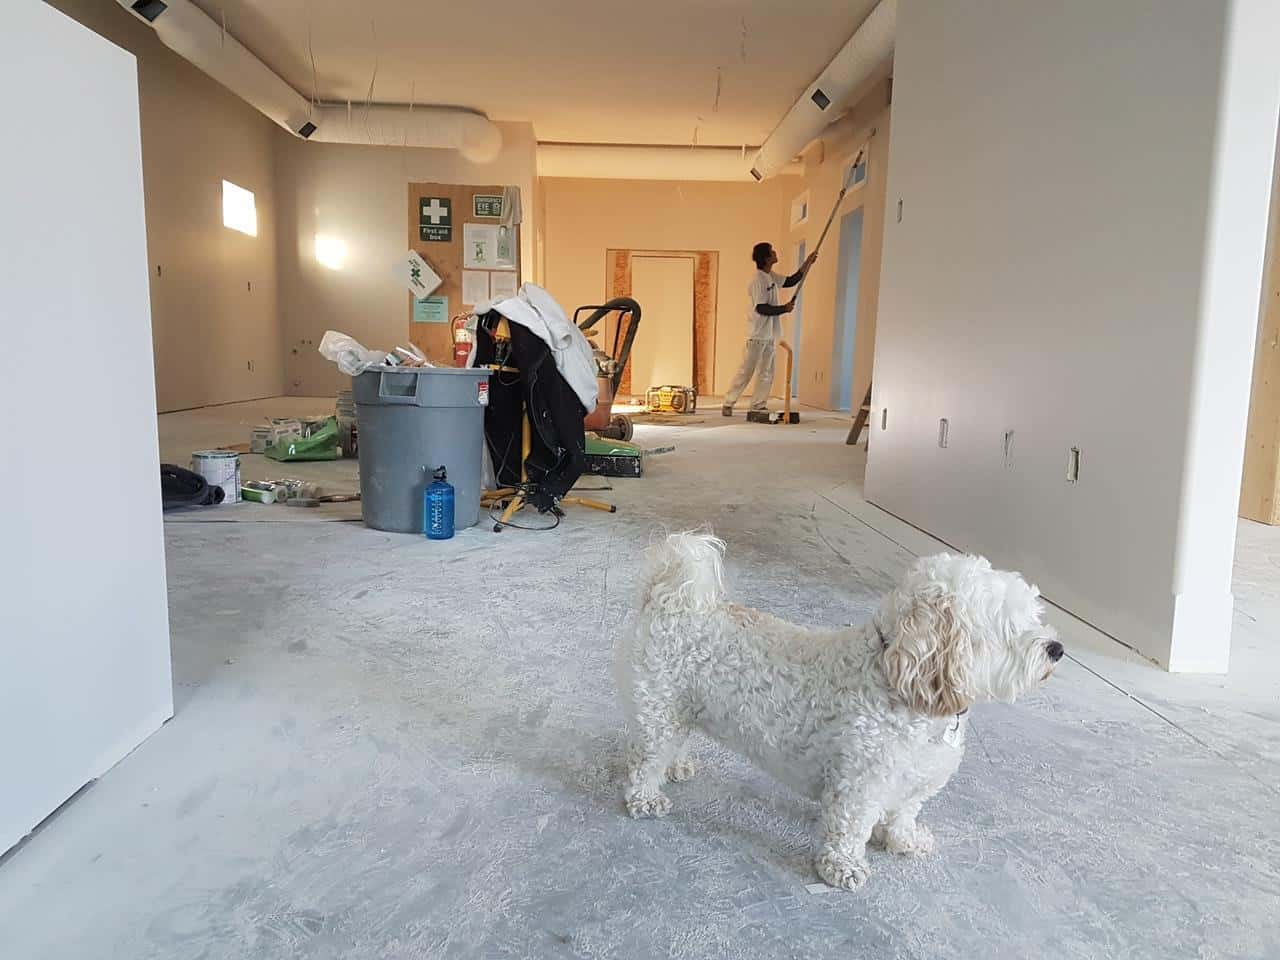 Planning To Remodel Your Home? Here's Some Important Advice. Staged apartmenr undergoing the wall painting